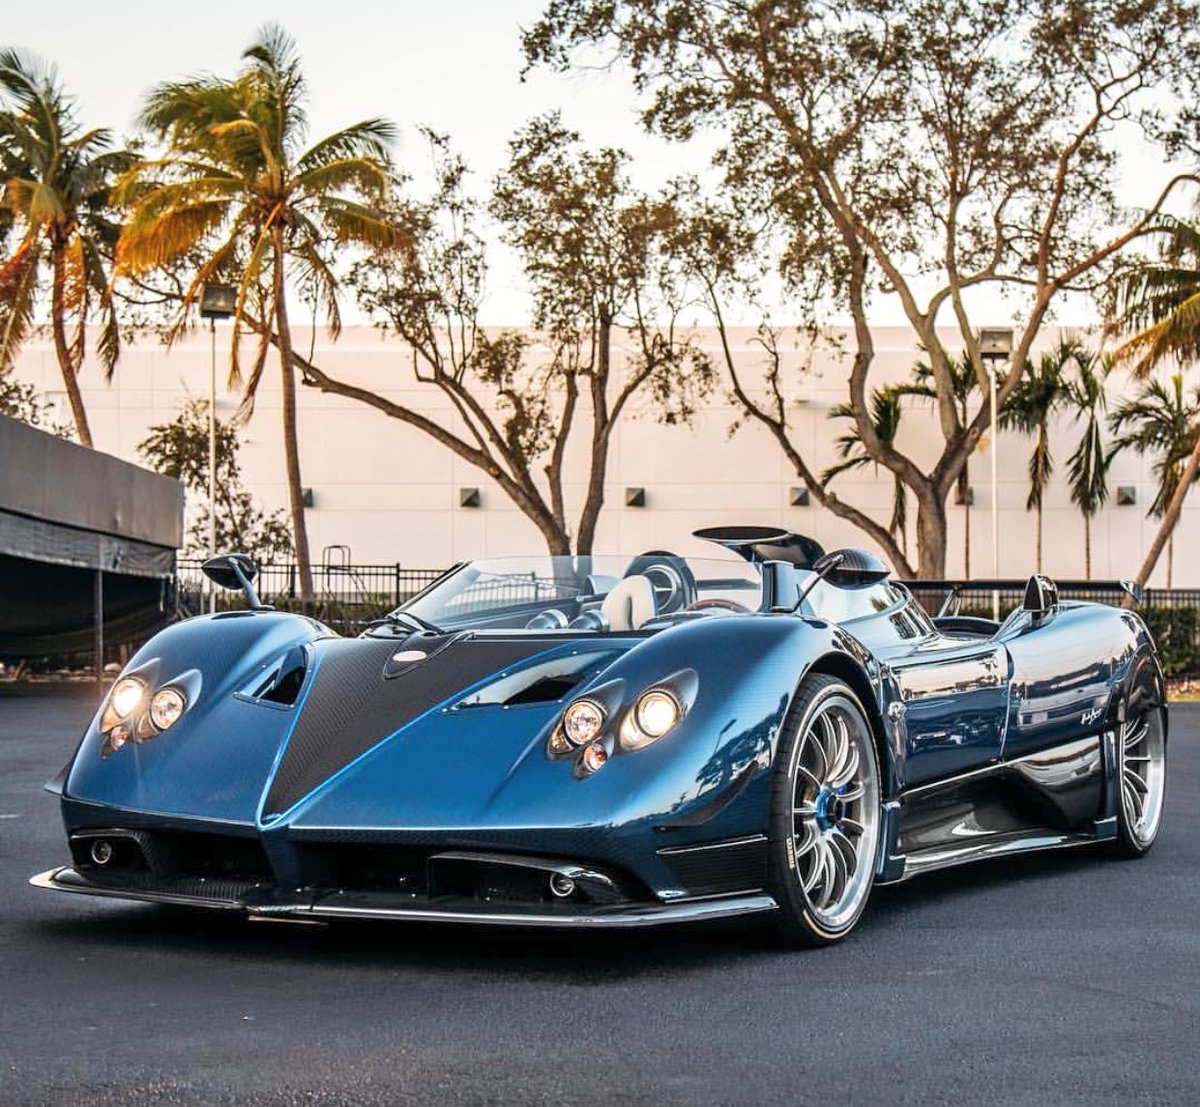 Michael Kubler On Twitter Pagani Zonda Hp Barchetta Mercedes Amg M120 V12 N A Engine Exclusively Handcrafted By Michael Kubler F1mike28 In Germany Affalterbach Https T Co Wa0dtkt2xq